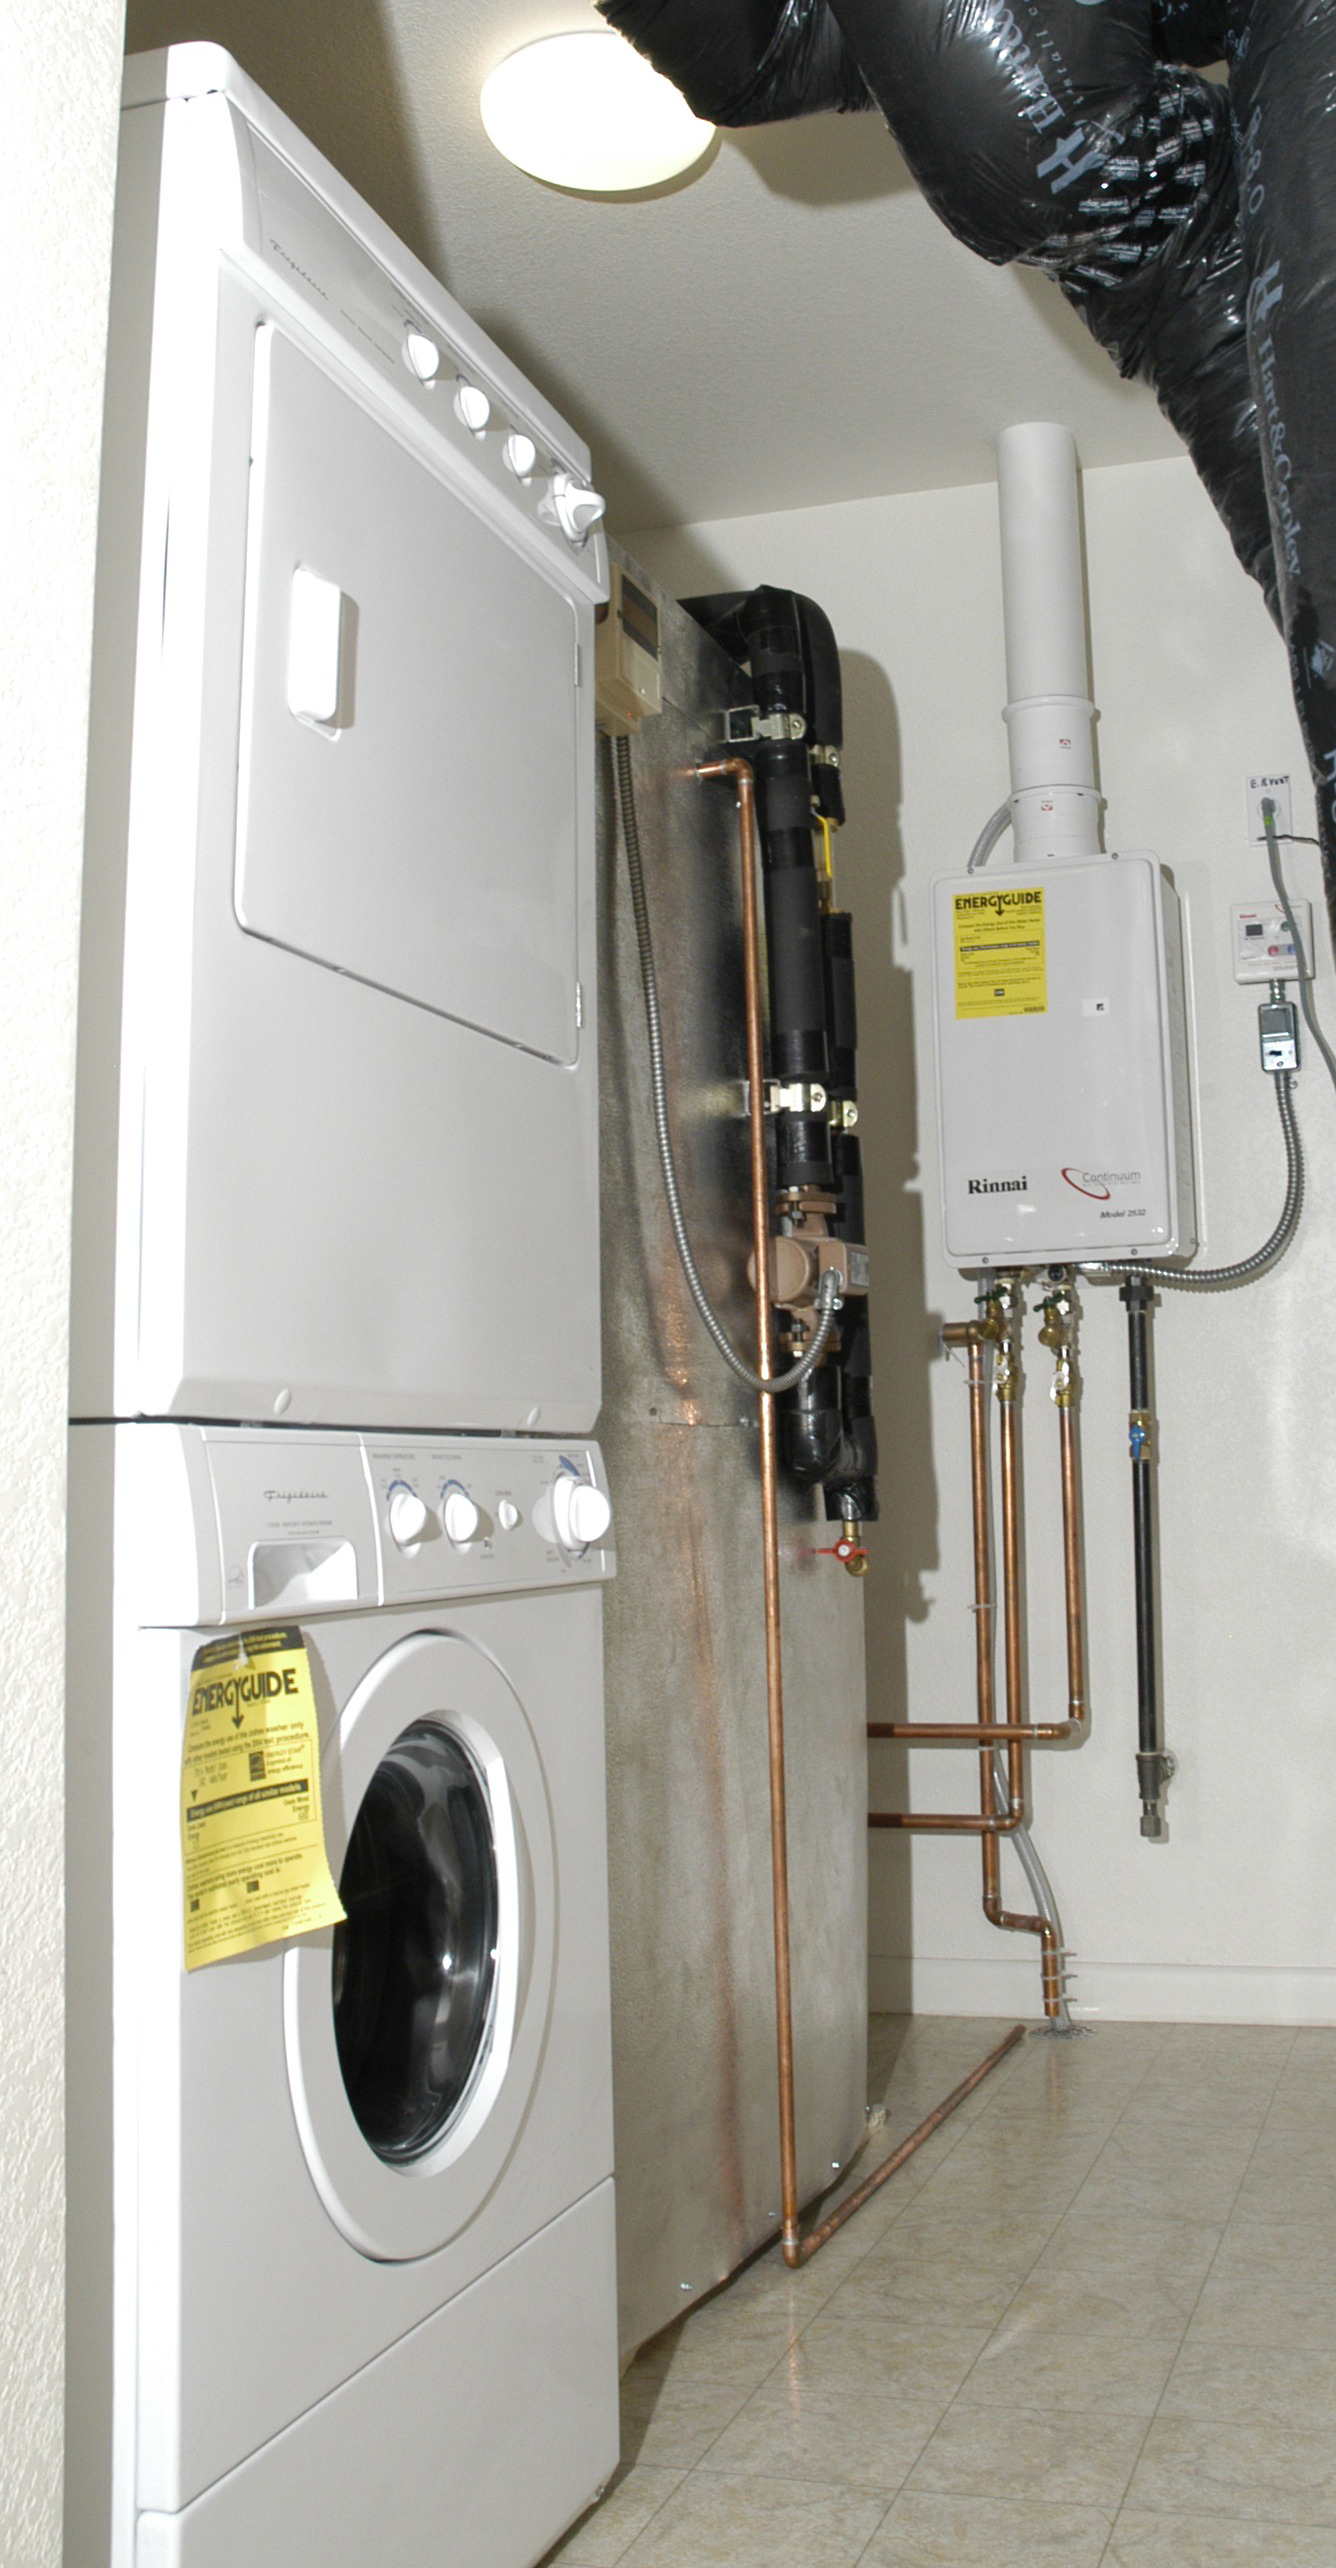 a wholehouse tankless gas water heater installed in a laundry room